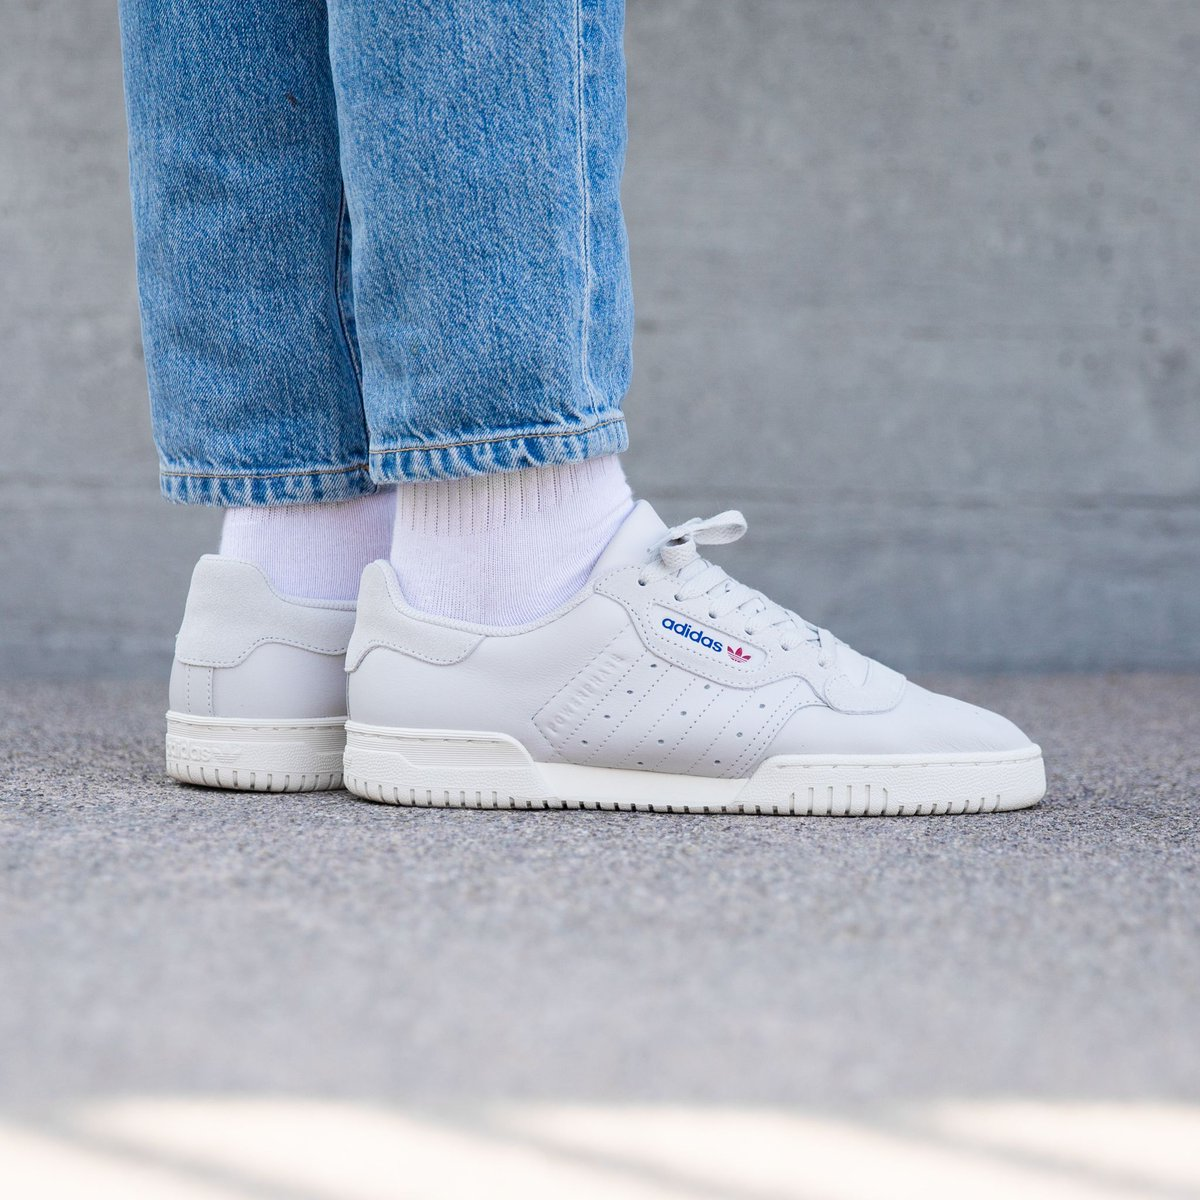 5d5b29b3 OUT NOW 🔥 Adidas Powerphase - Grey One/Grey One/Off White link ...